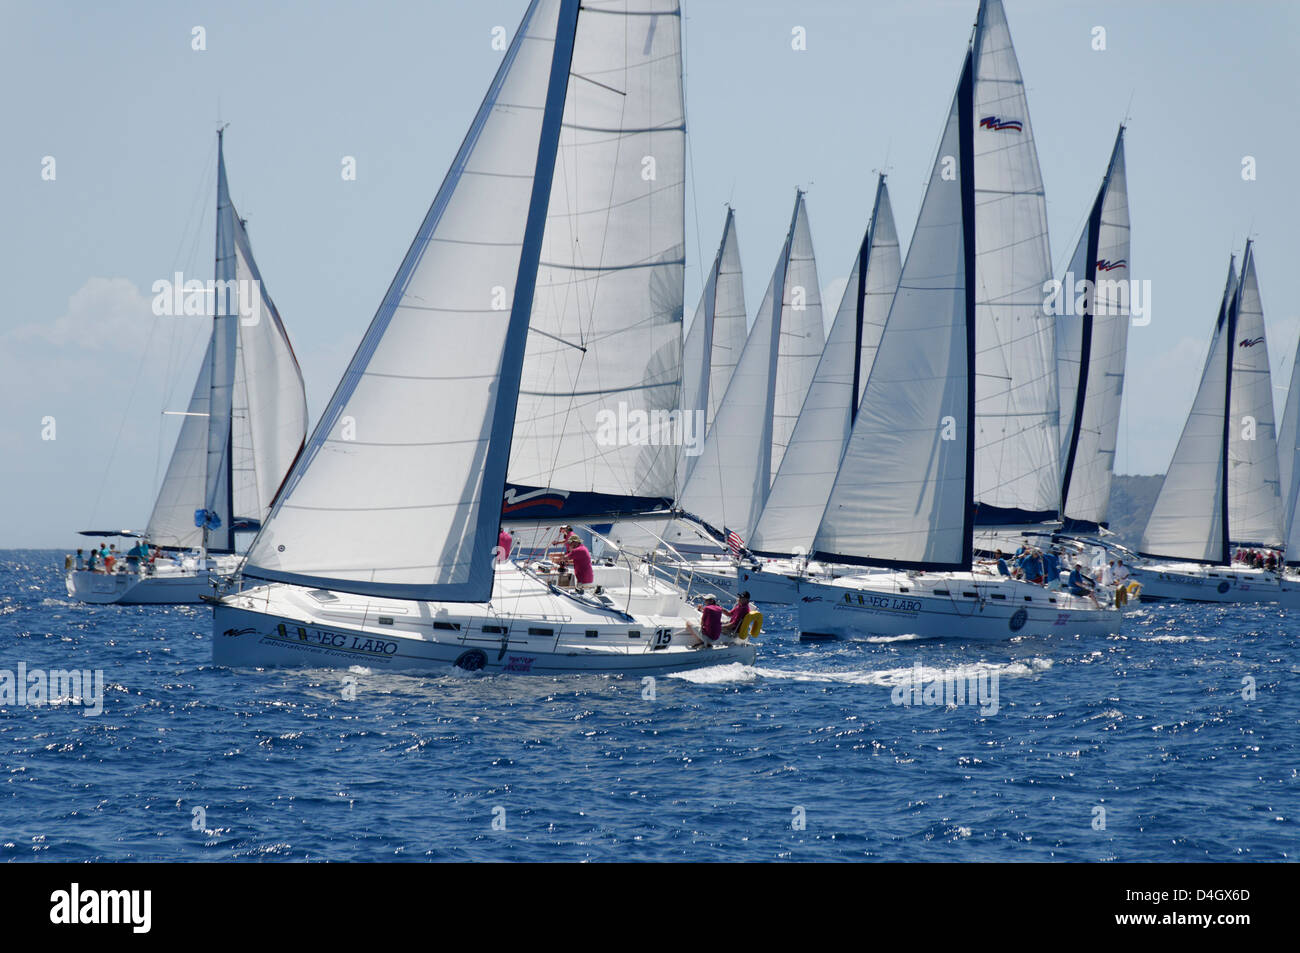 Sailboat regattas. British Virgin Islands, West Indies, Caribbean - Stock Image